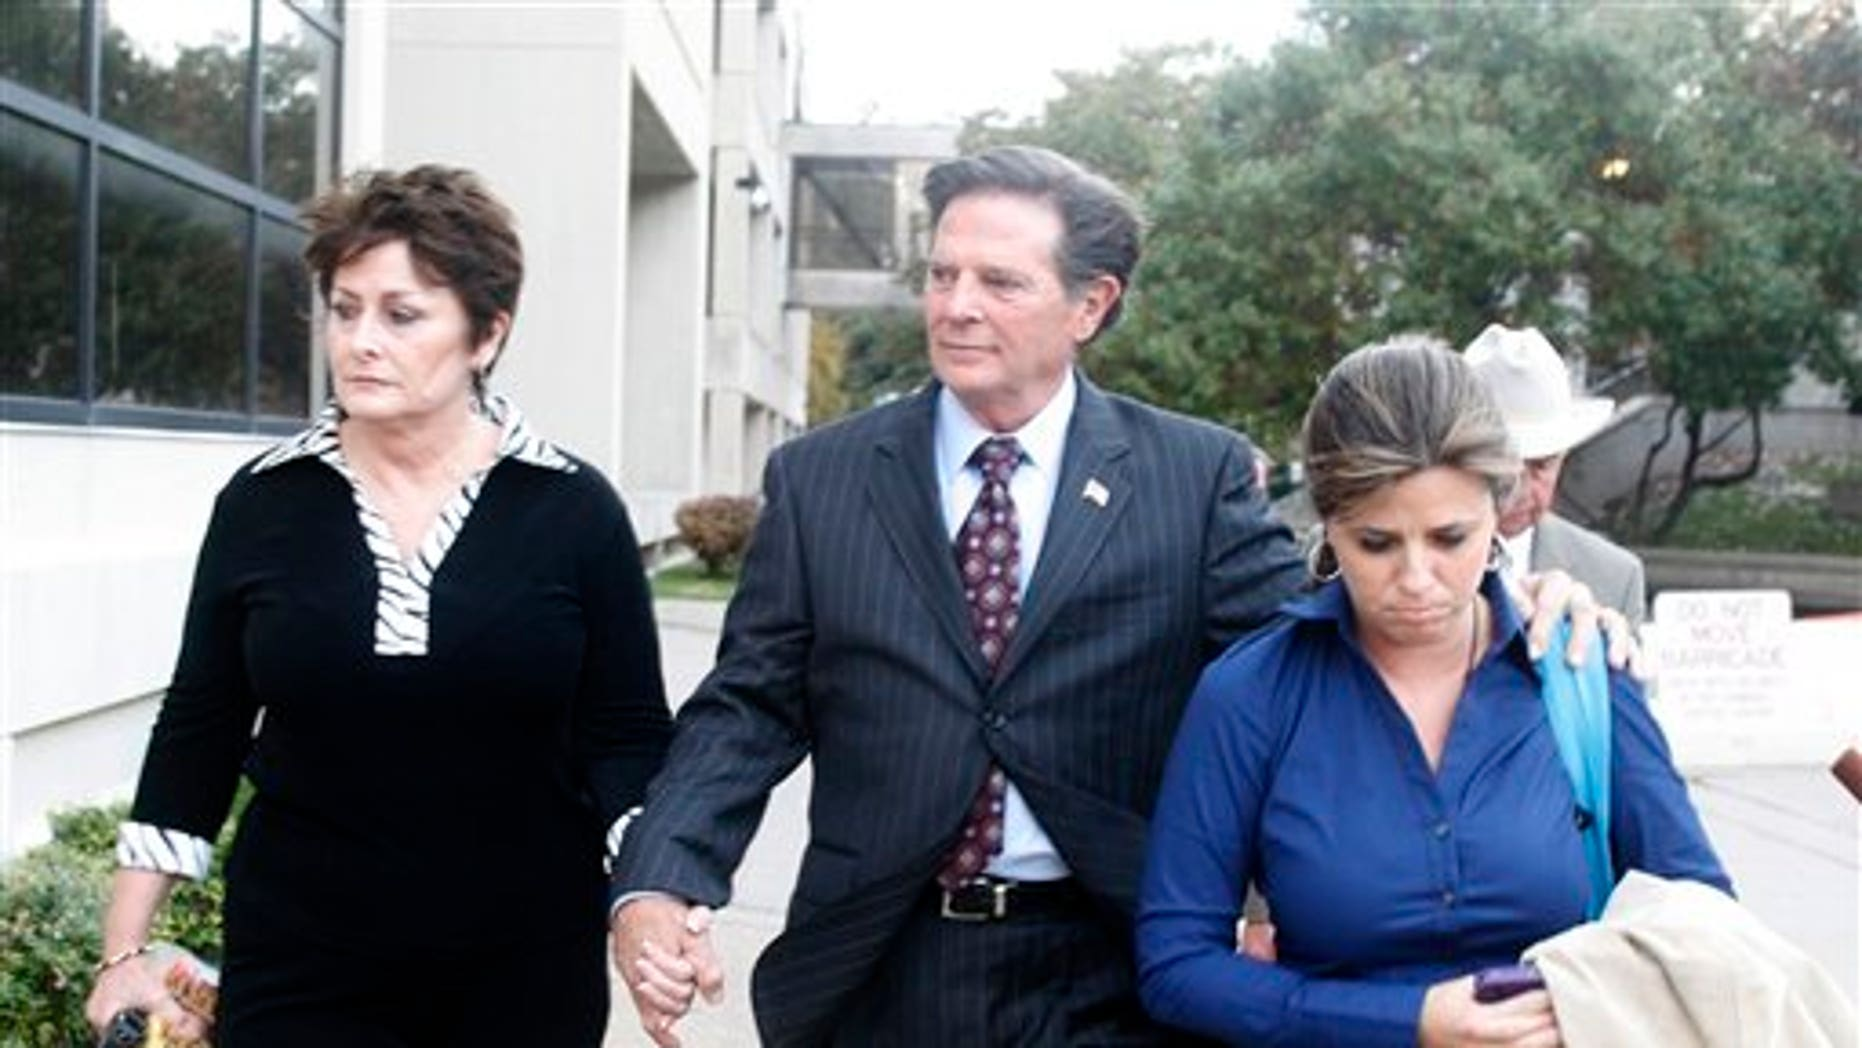 Former House Majority Leader Tom DeLay, along with his wife Christine and daughter Danielle Garcia, leave the Travis Coumty Courthouse in Austin, Texas on Wednesday, Nov. 24, 2010. A jury found Delay guilty of money laundering and conspiracy to commit money laundering. (AP Photo/Jack Plunkett)